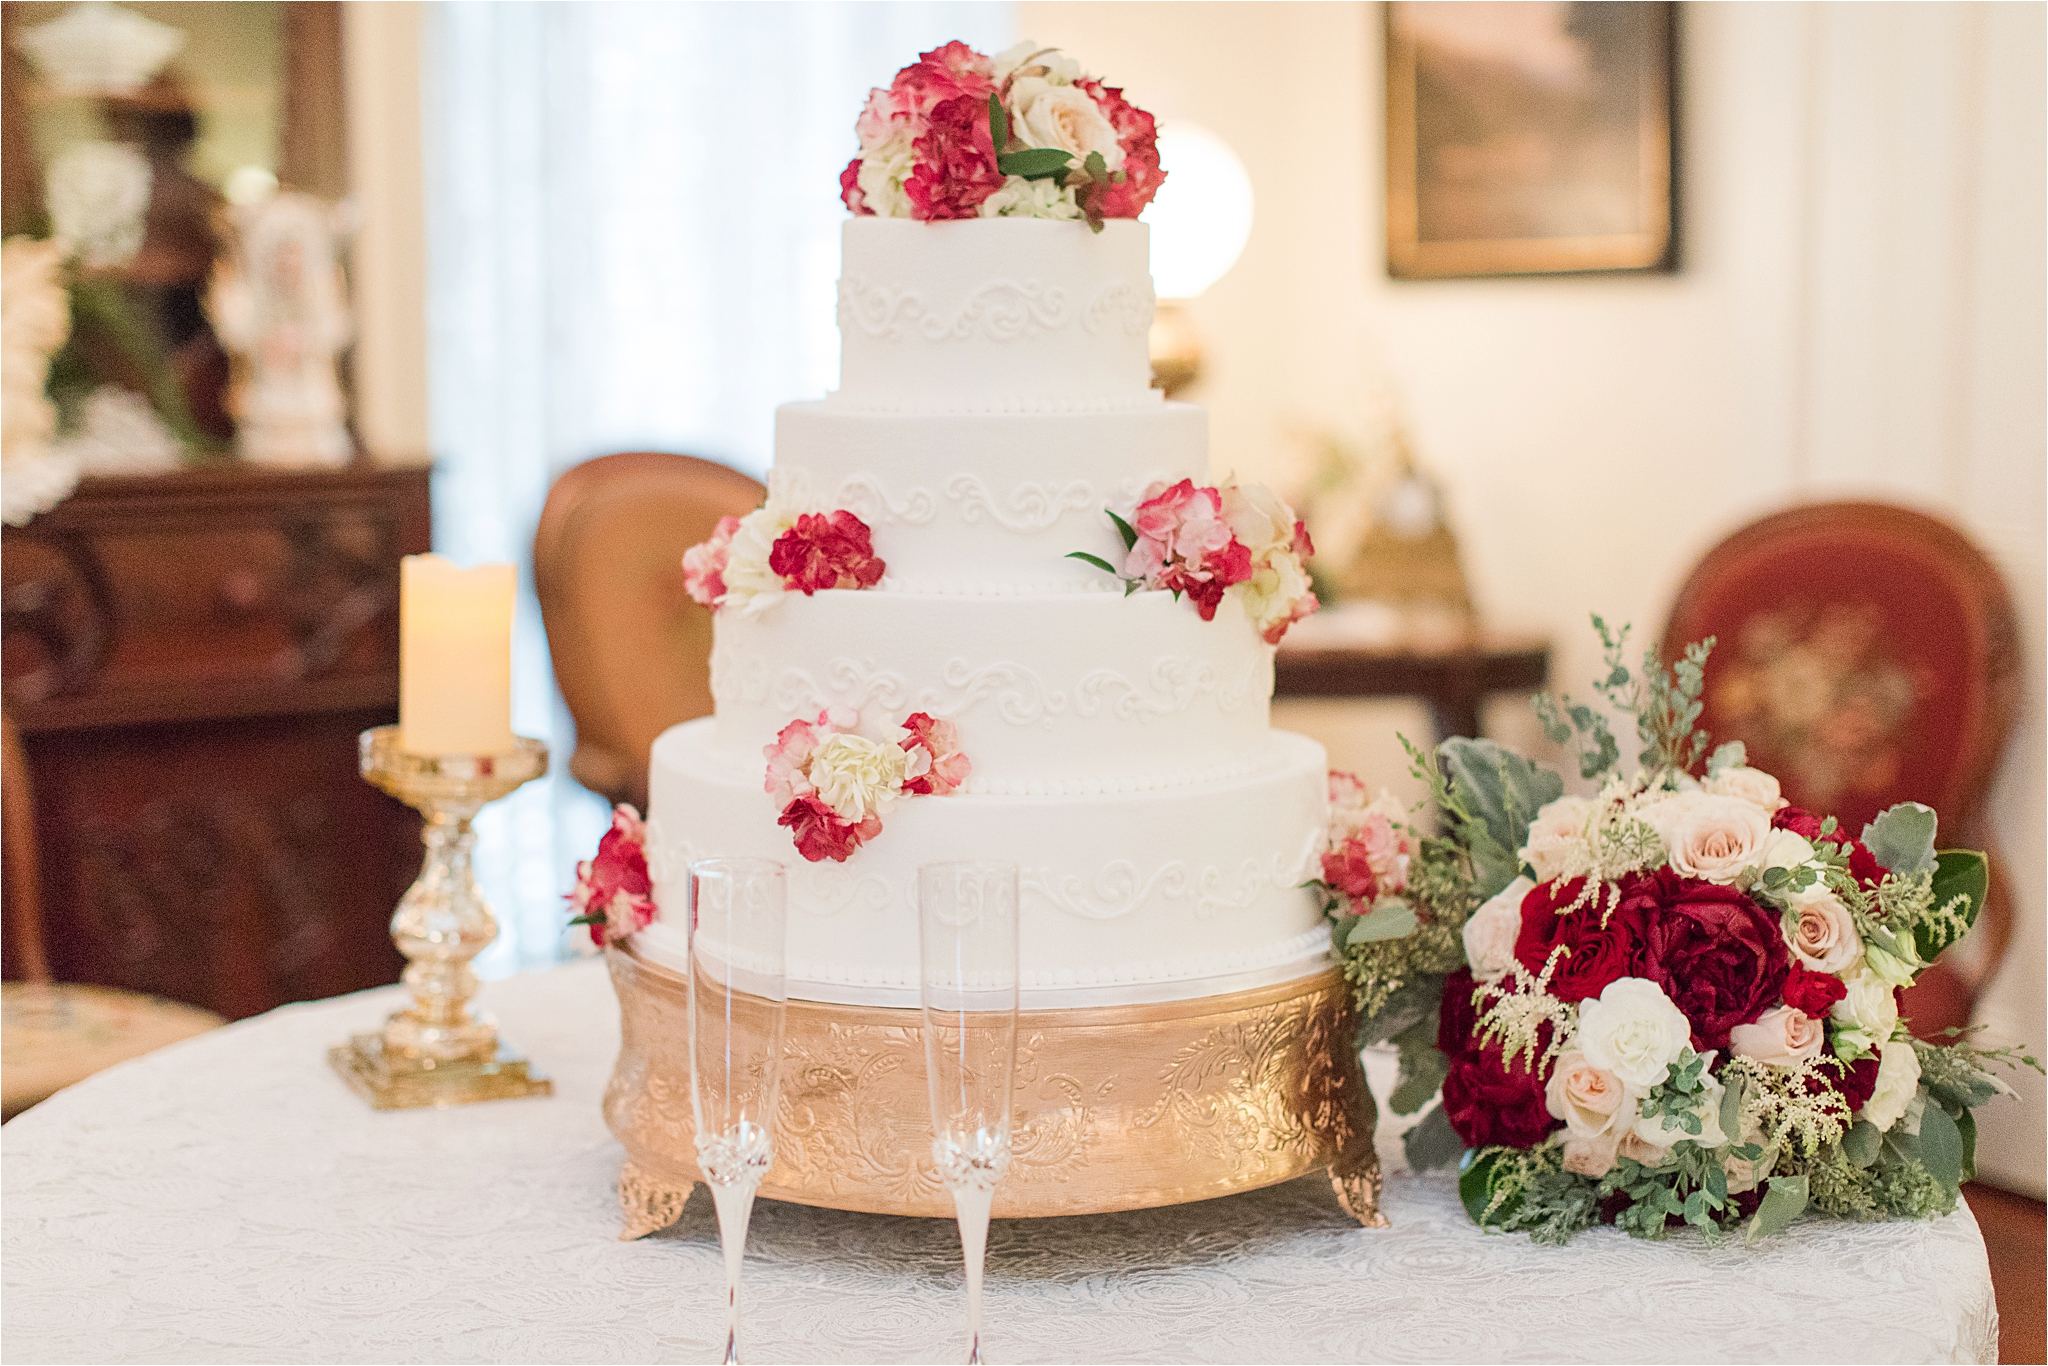 four-tier-wedding-cake-red-roses-bushle-flower-cake-topper